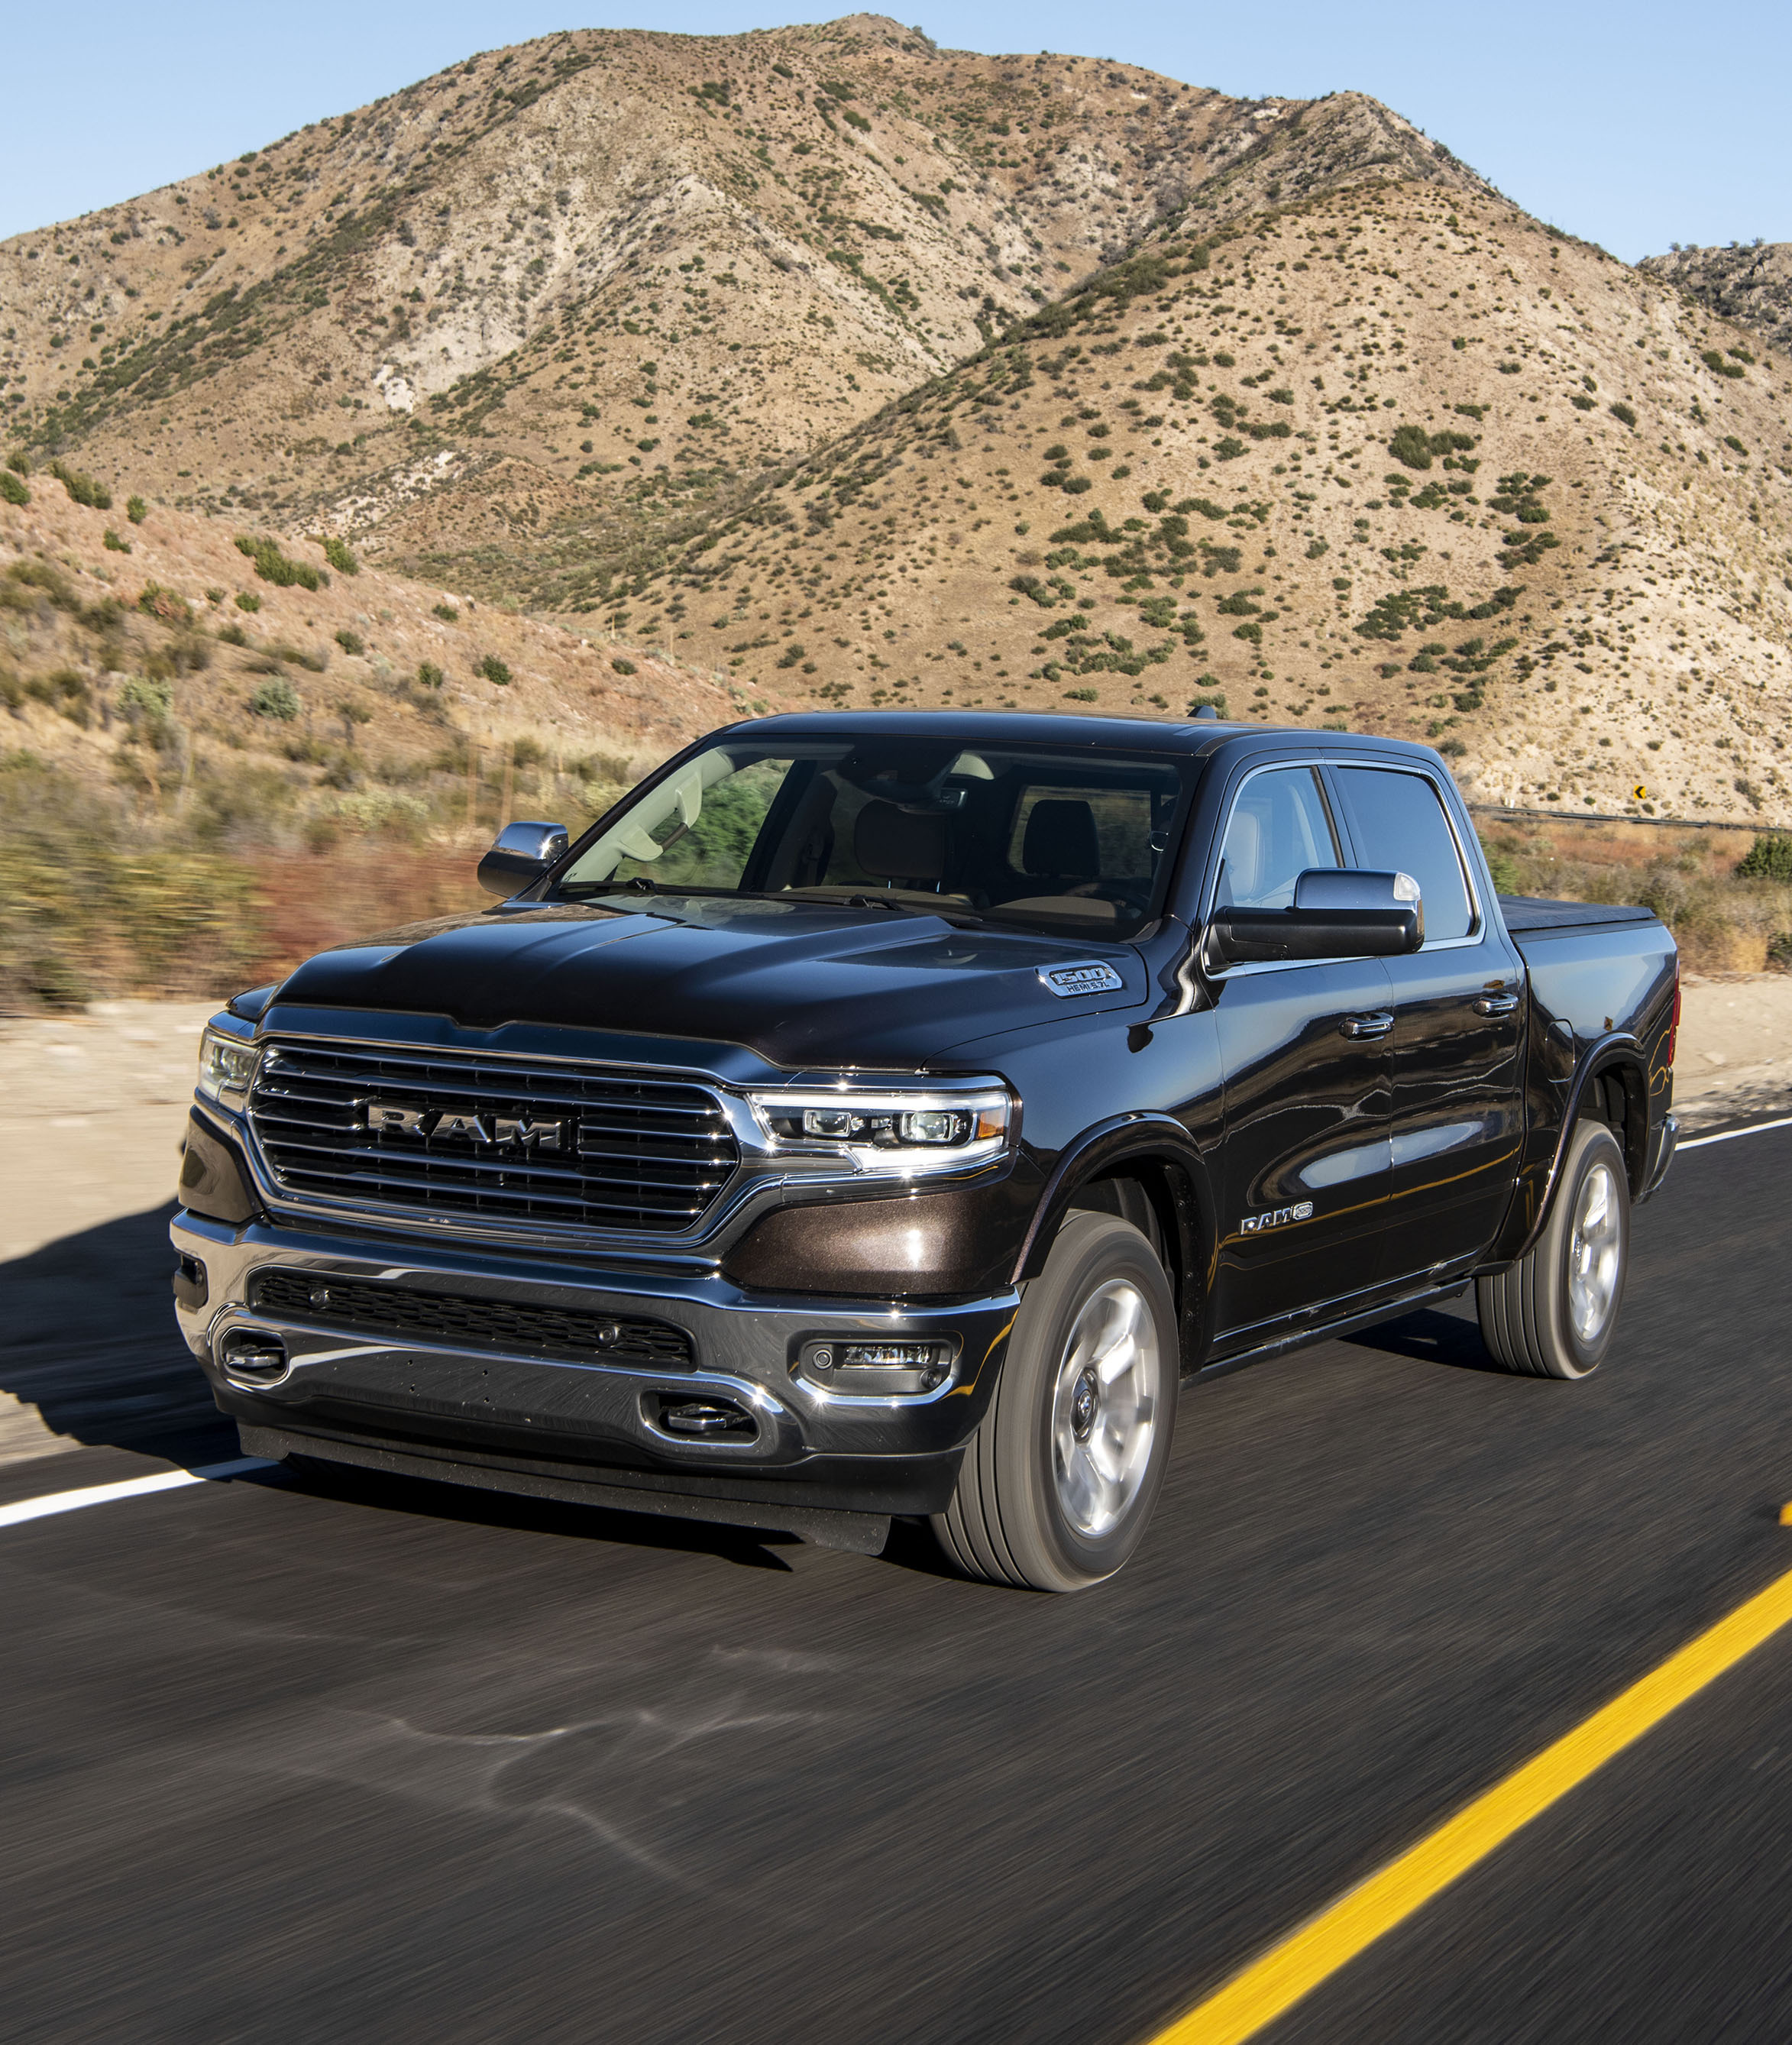 2019 Ram 1500: All-new 2019 Ram 1500 Wins TRUCK TREND's 2019 Pickup Truck